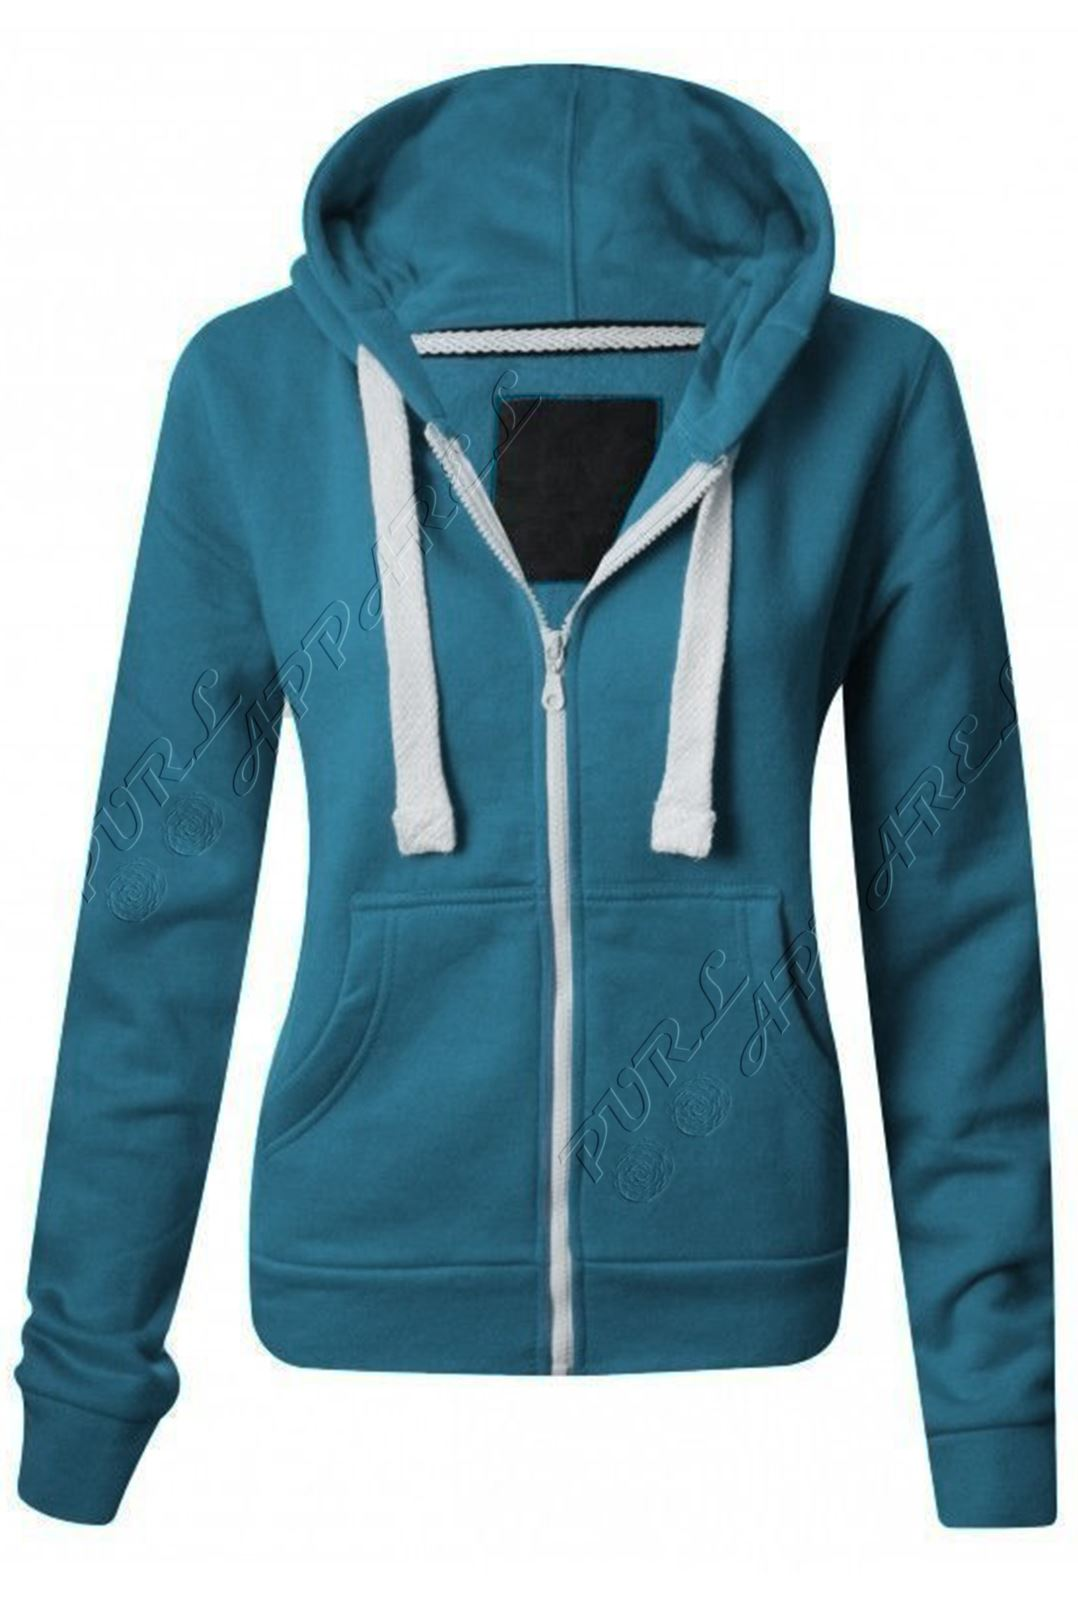 Find great deals on eBay for plain hoodie. Shop with confidence.